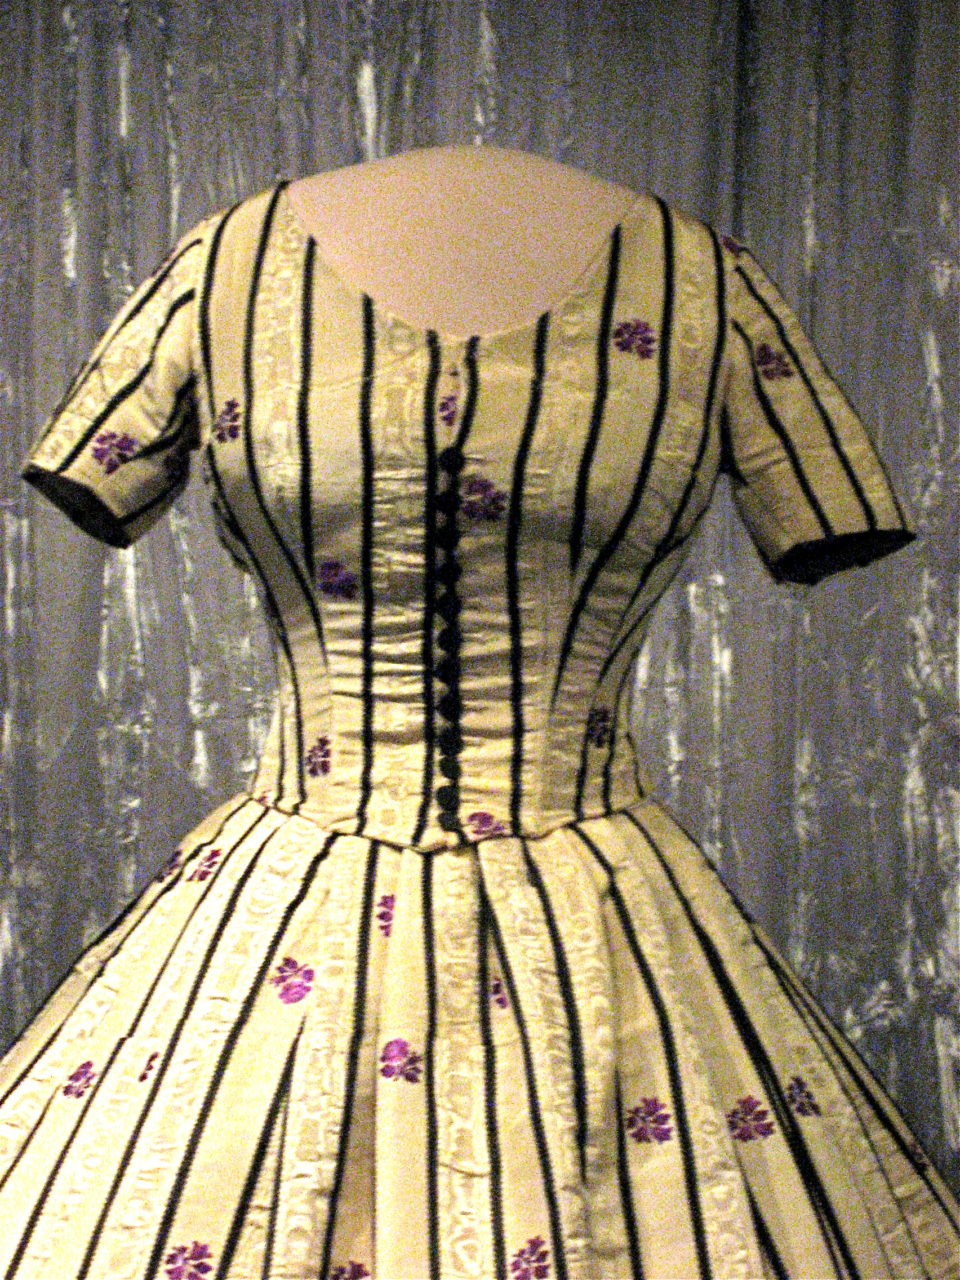 Evening dress for Mary Todd Lincoln